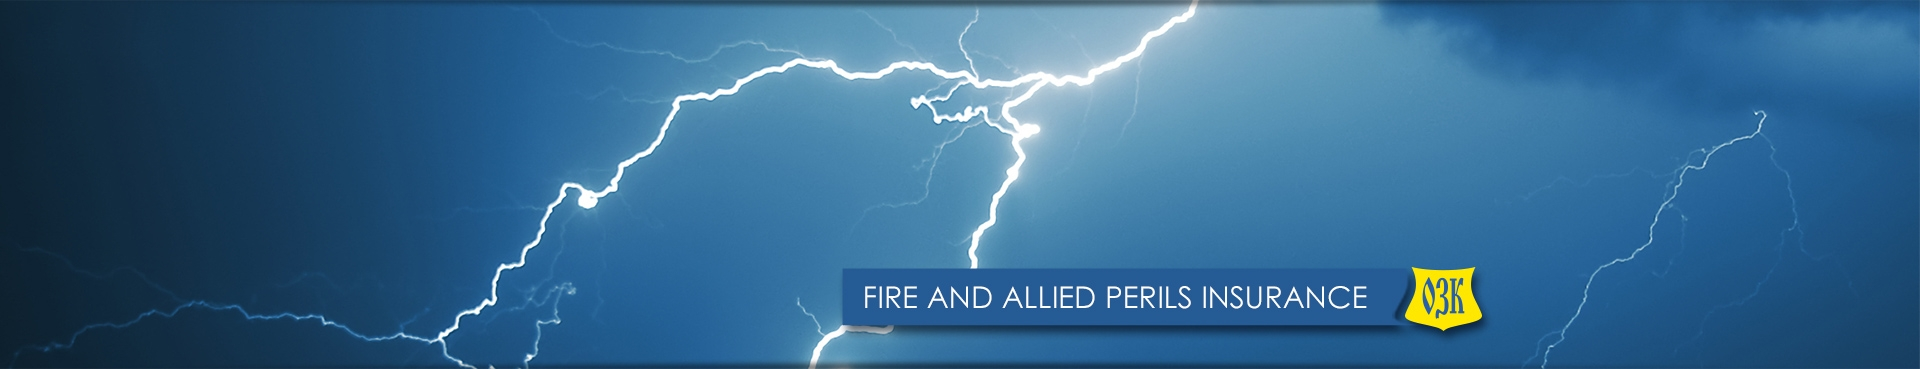 FIRE AND ALLIED PERILS INSURANCE